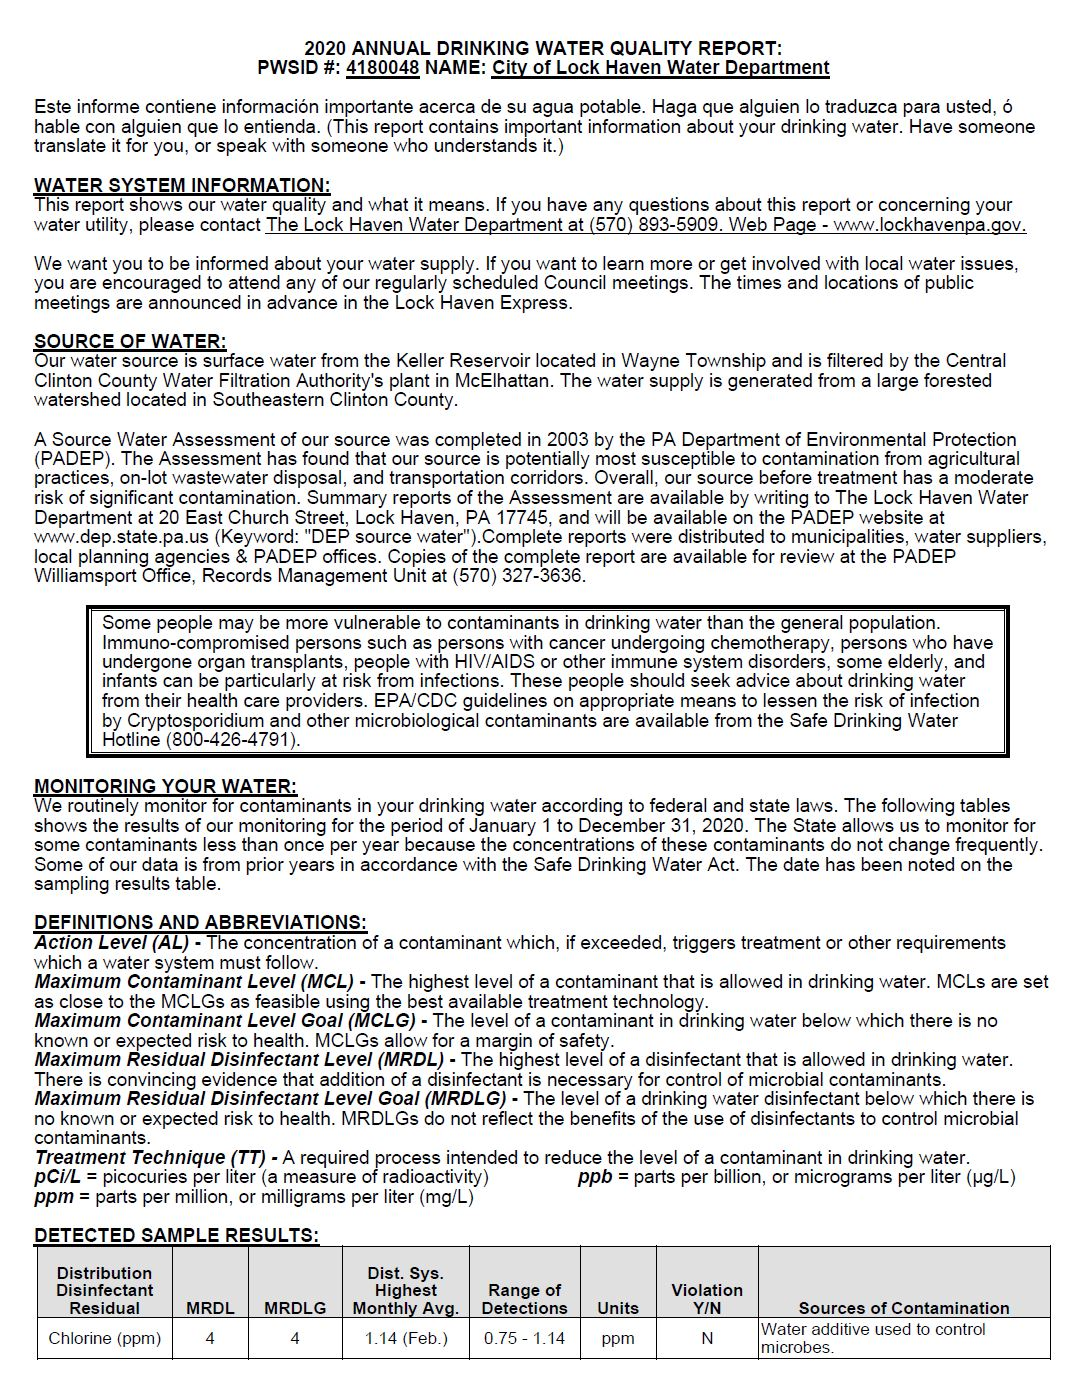 2020 Annual Drinking Water Quality Report Page 1